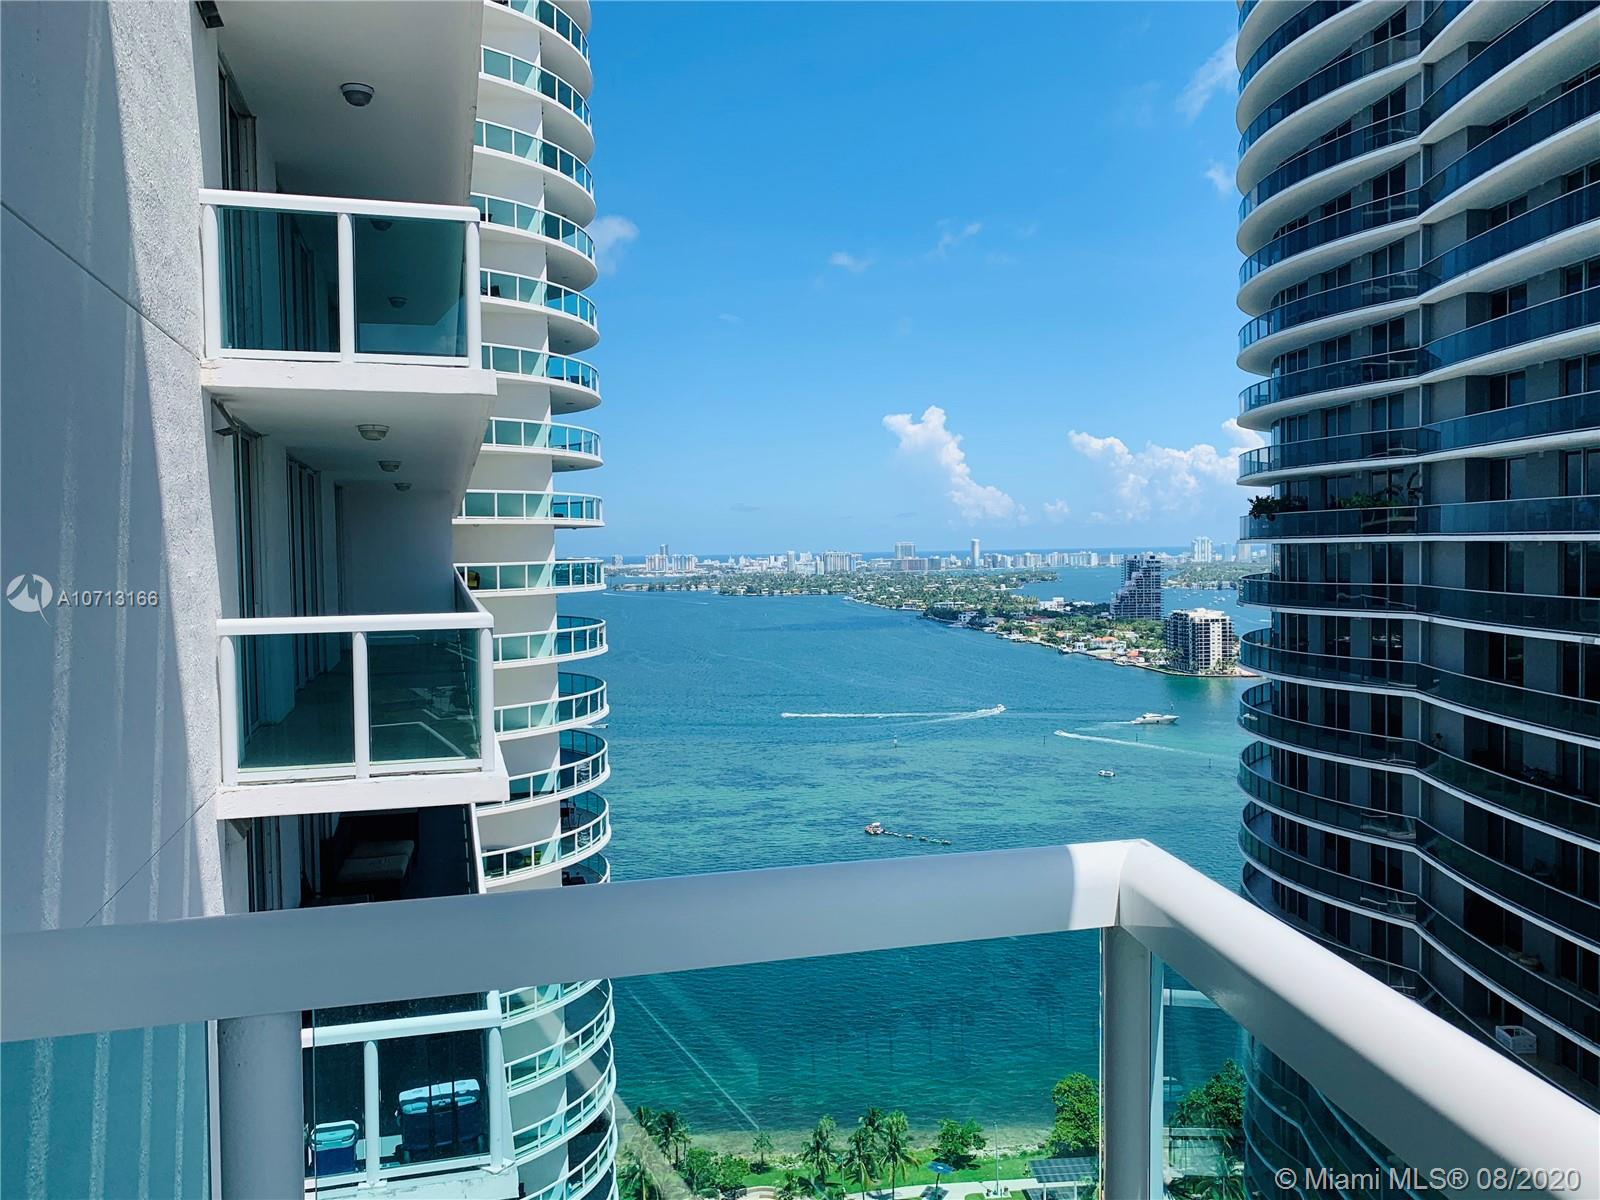 """Motivated Seller! Submit your offer! Amazing and upgraded apartment at the 1800 Club in Biscayne Blvd. Featuring 2 bedroom + PLUS DEN (spacious and closed) which can be used as """"ANOTHER ROOM"""" and 2 Bathroom. Two beautiful open balconies overlooking the bay and the city skyline! Building amenities includes Gym, Sauna, Steam Room, Game Room, Party Room, Common Areas, Heated Pool, SPA, BBQ Area, Fiber optic wiring in the entire building, free WiFi available inside the building.  All closets are made of wood. Concierge Services, Valet parking and the lowest HOA cost in the area, includes Wi-Fi, cable/tv, water and trash.. Located across the amazing Margaret Pace Park! . PLUS: WITH EXTRA STORAGE SPACE ON THE 6tH FLOOR. It is also available for rent $3,500 MLS A 10842594 """""""